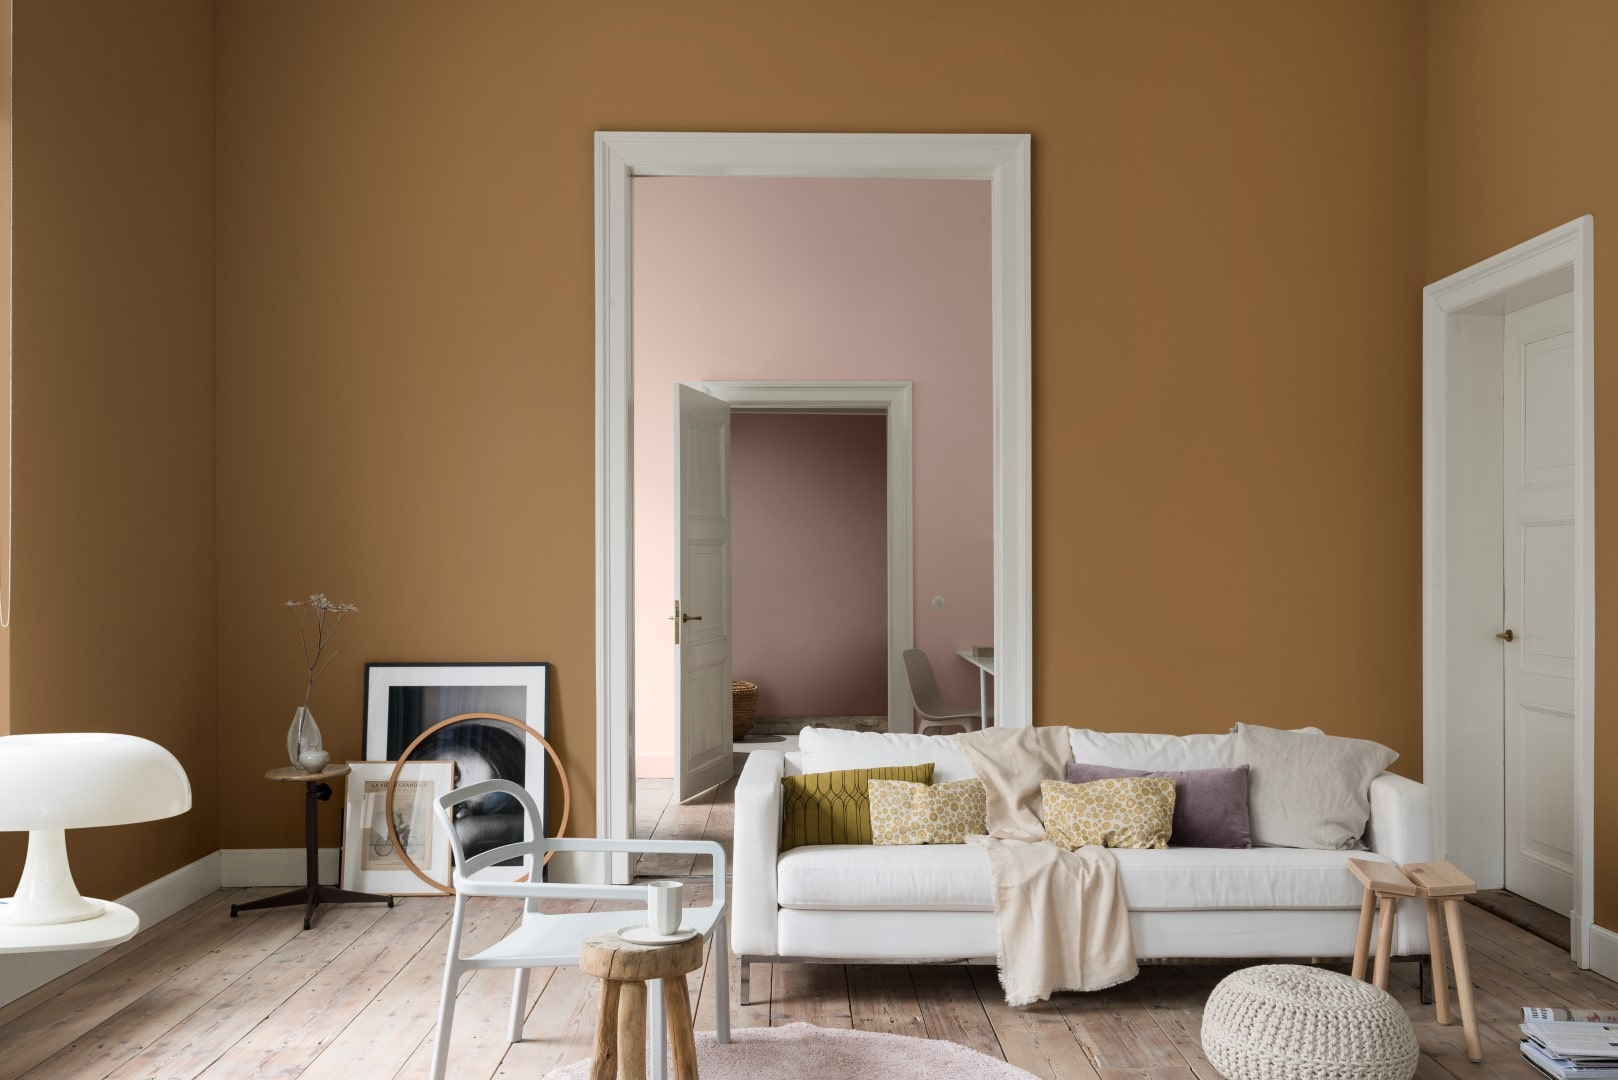 Dulux Colour of the Year Spiced Honey and what flooring works with it